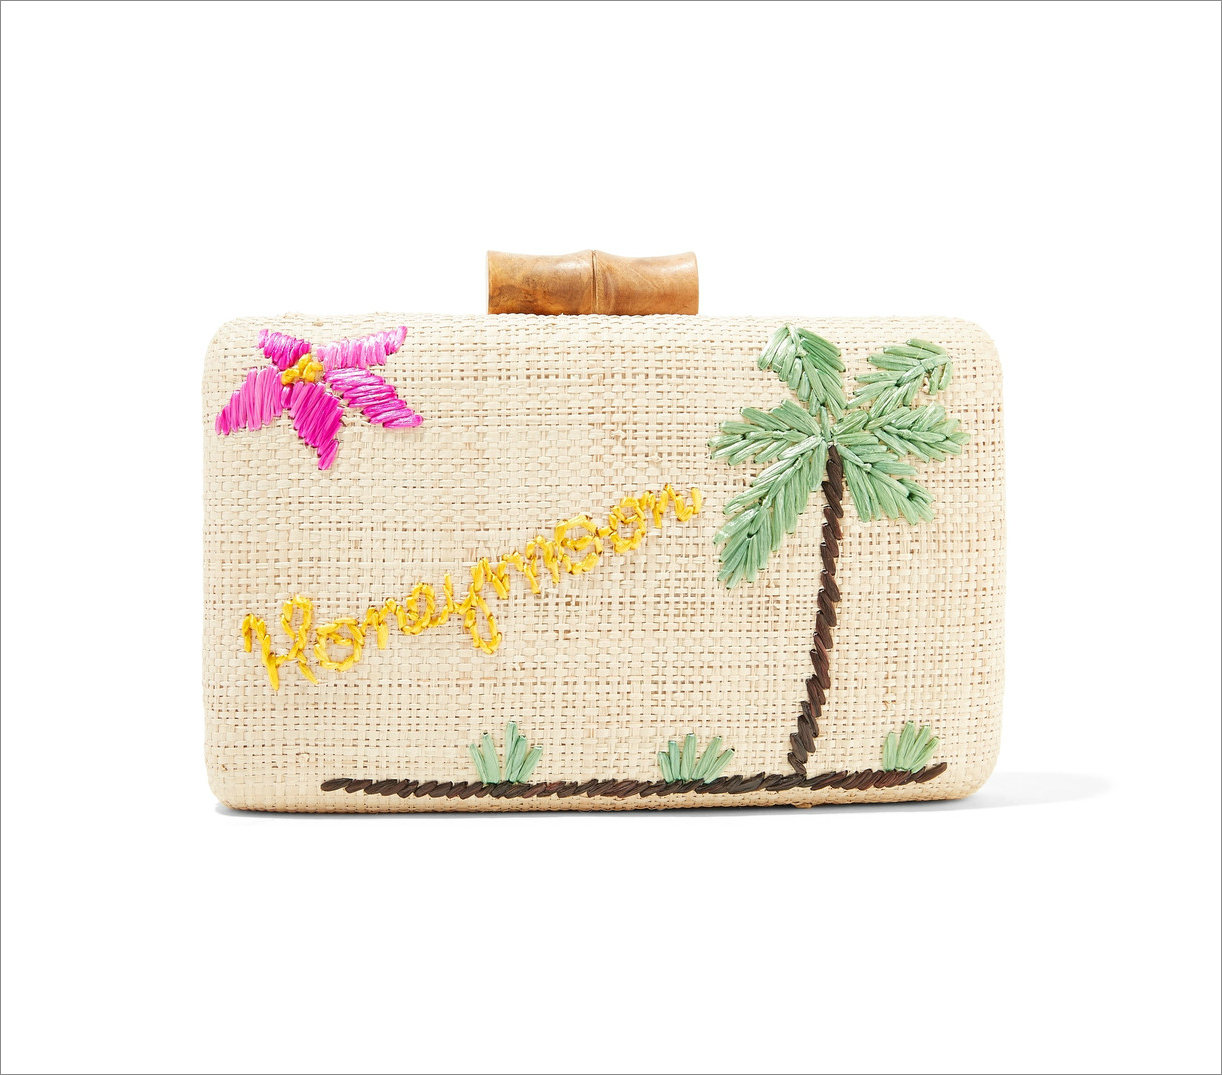 Kayu embroidered honeymoon raffia clutch honeymoon outfit ideas